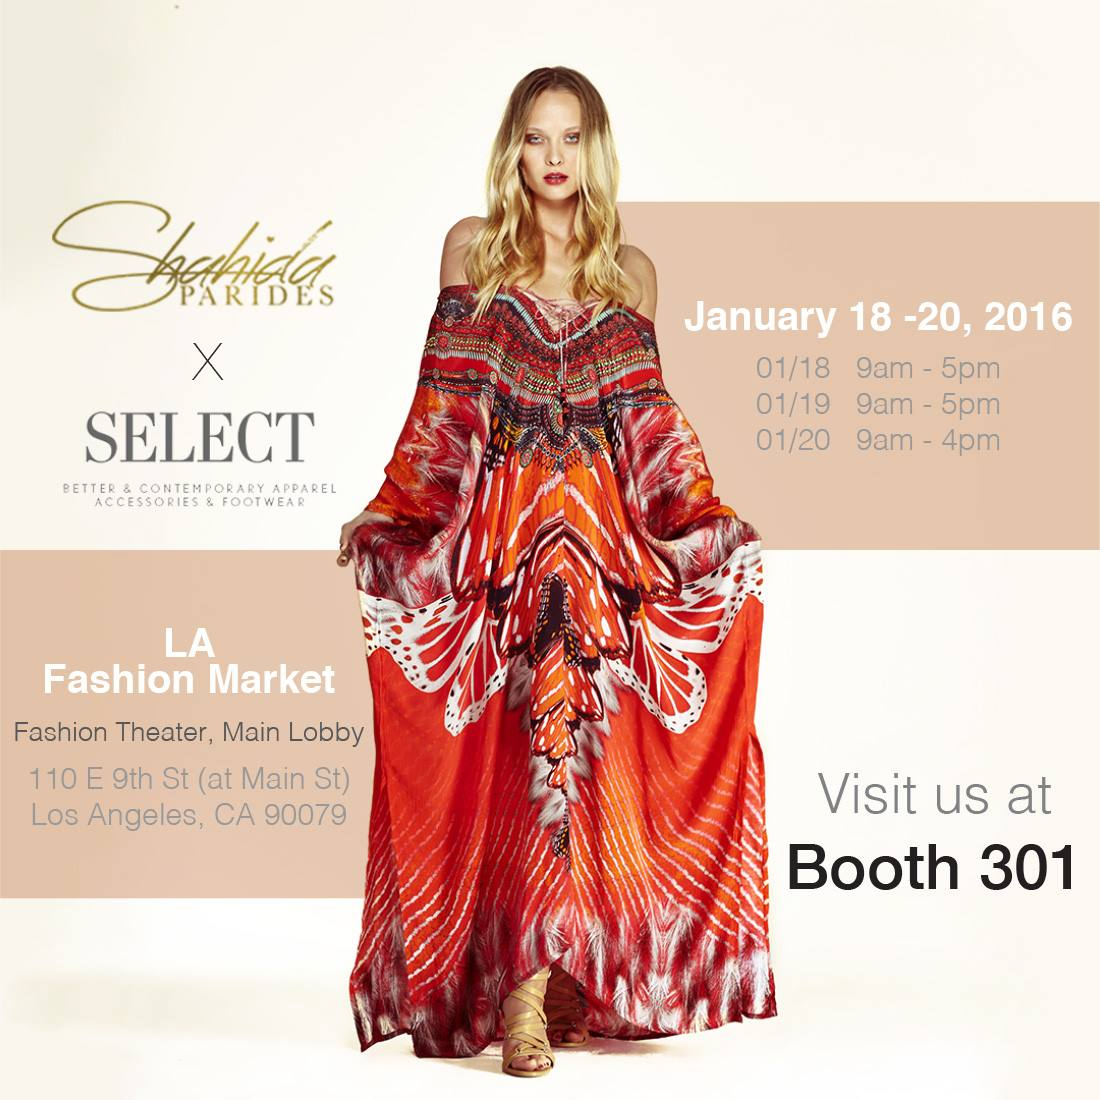 shahida-parides-in-downtown-los-angeles-select-2016